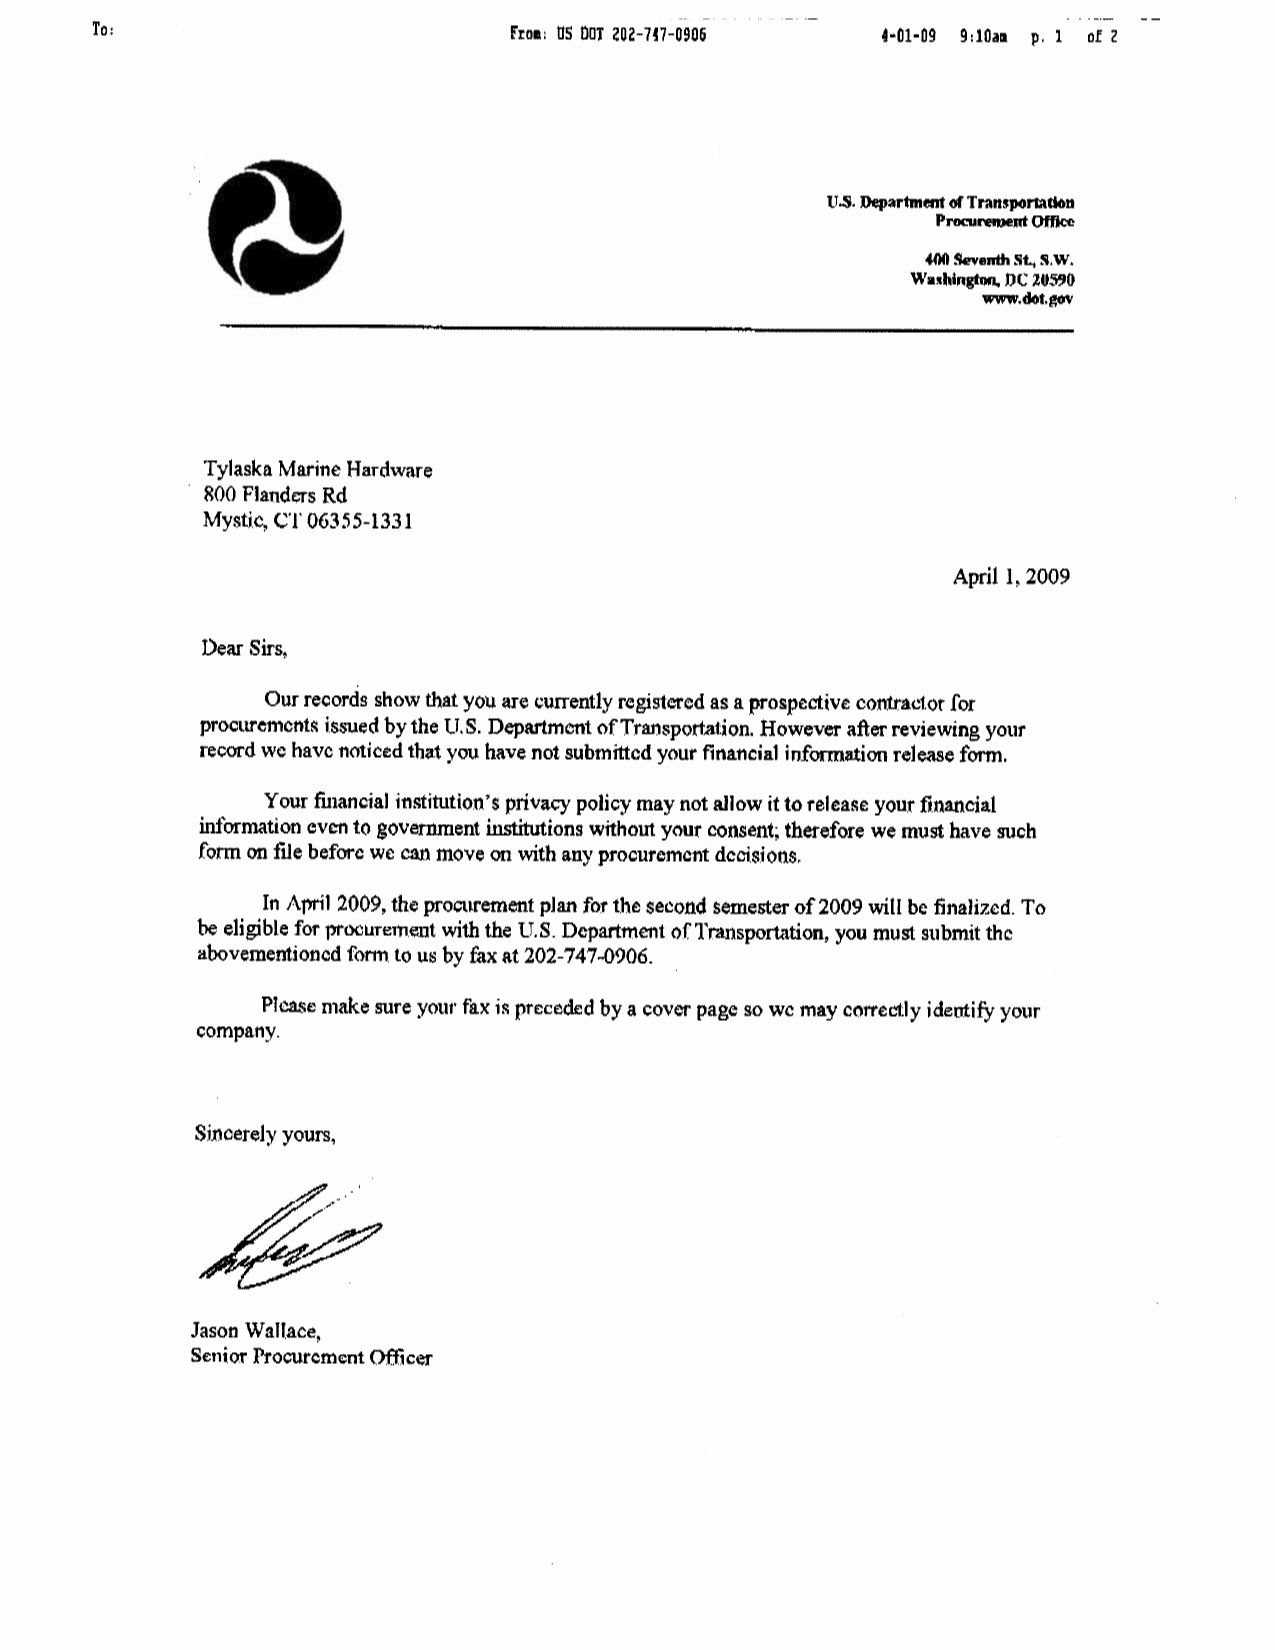 Requesting For Information Letter